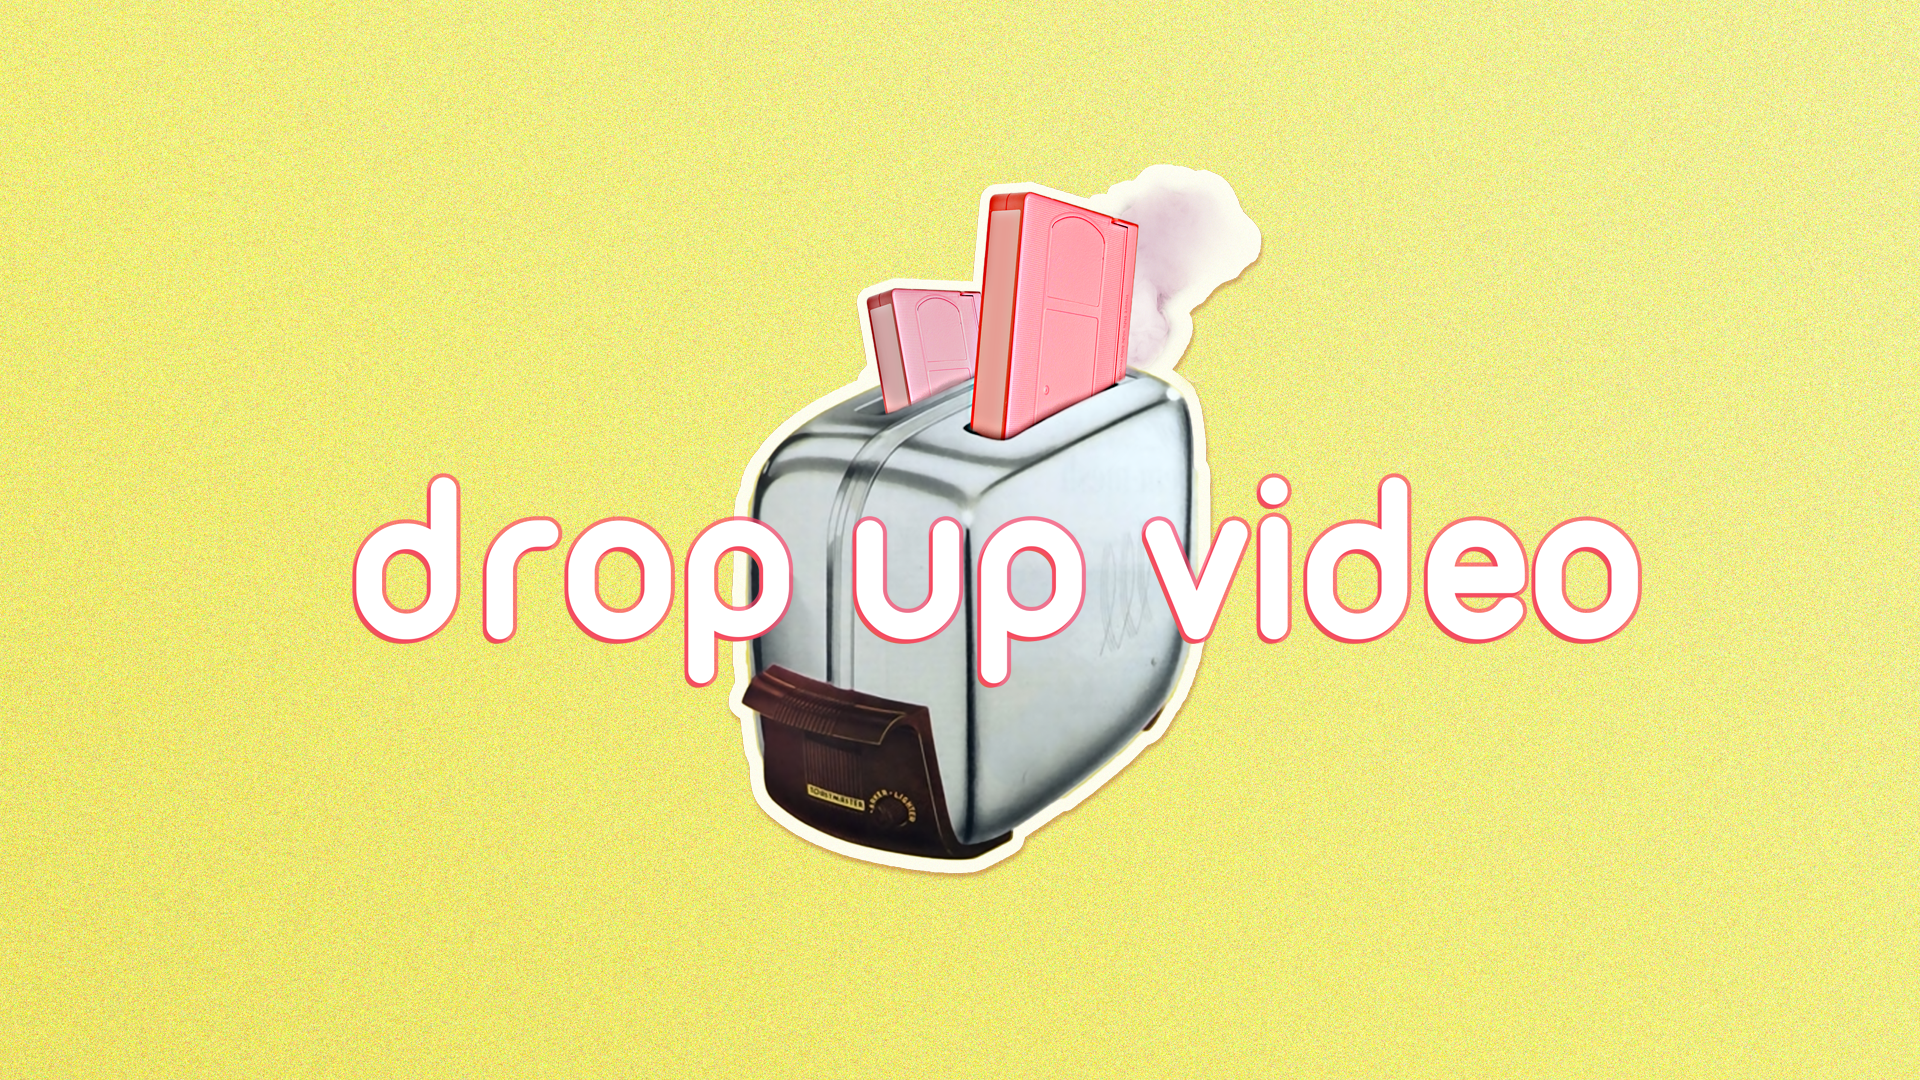 Drop Up Video